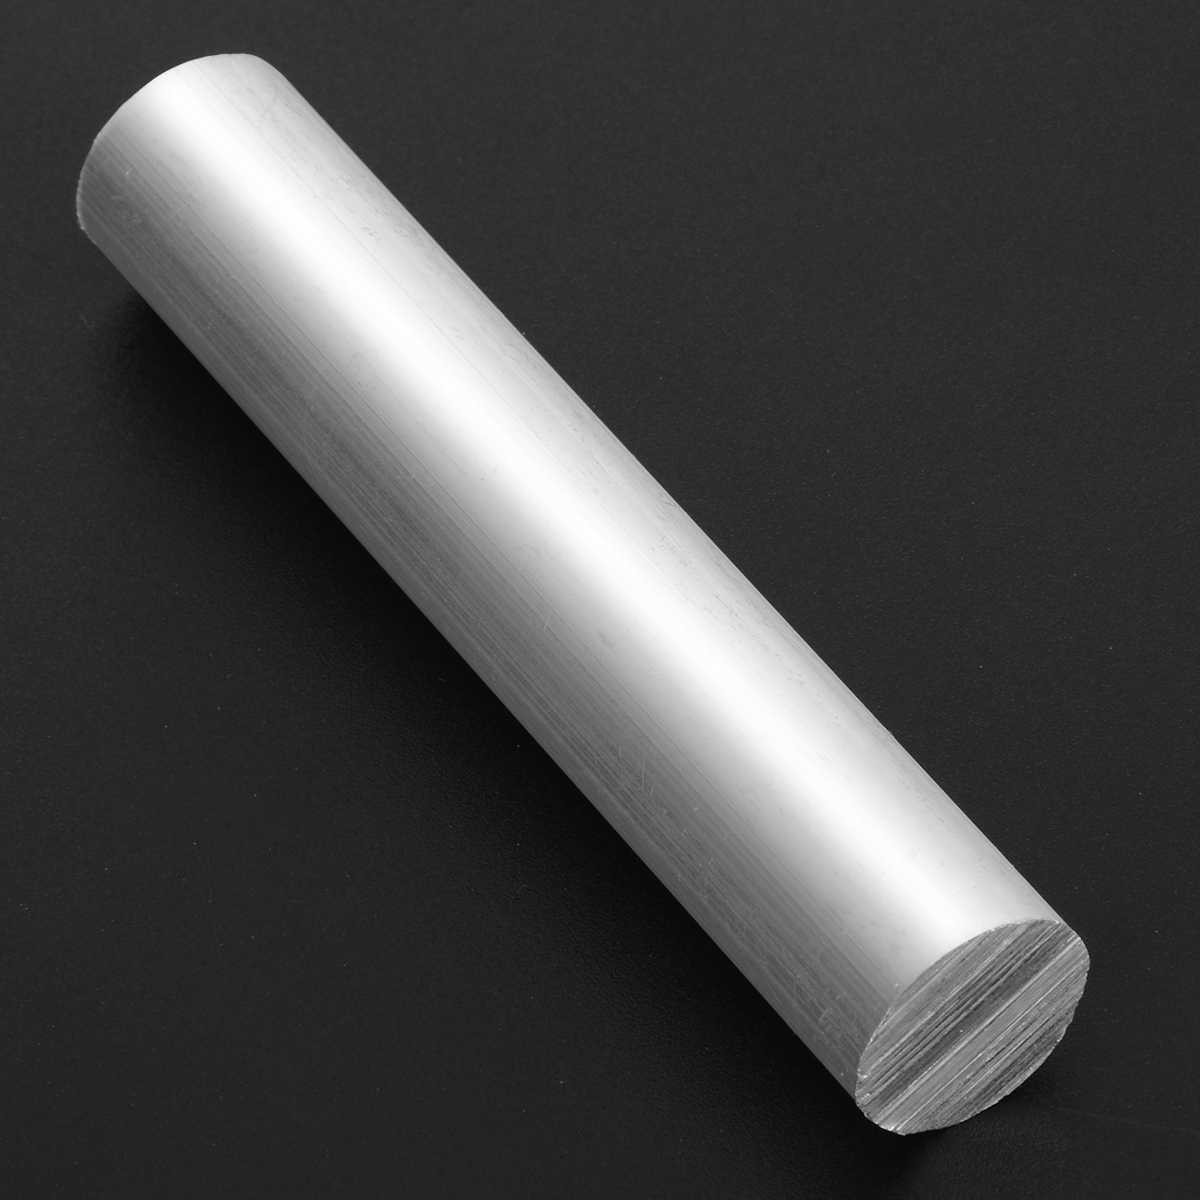 99.99/% Magnesium Metal Rod Mg High Purity High Quality 16mm x 9cm 1Pc